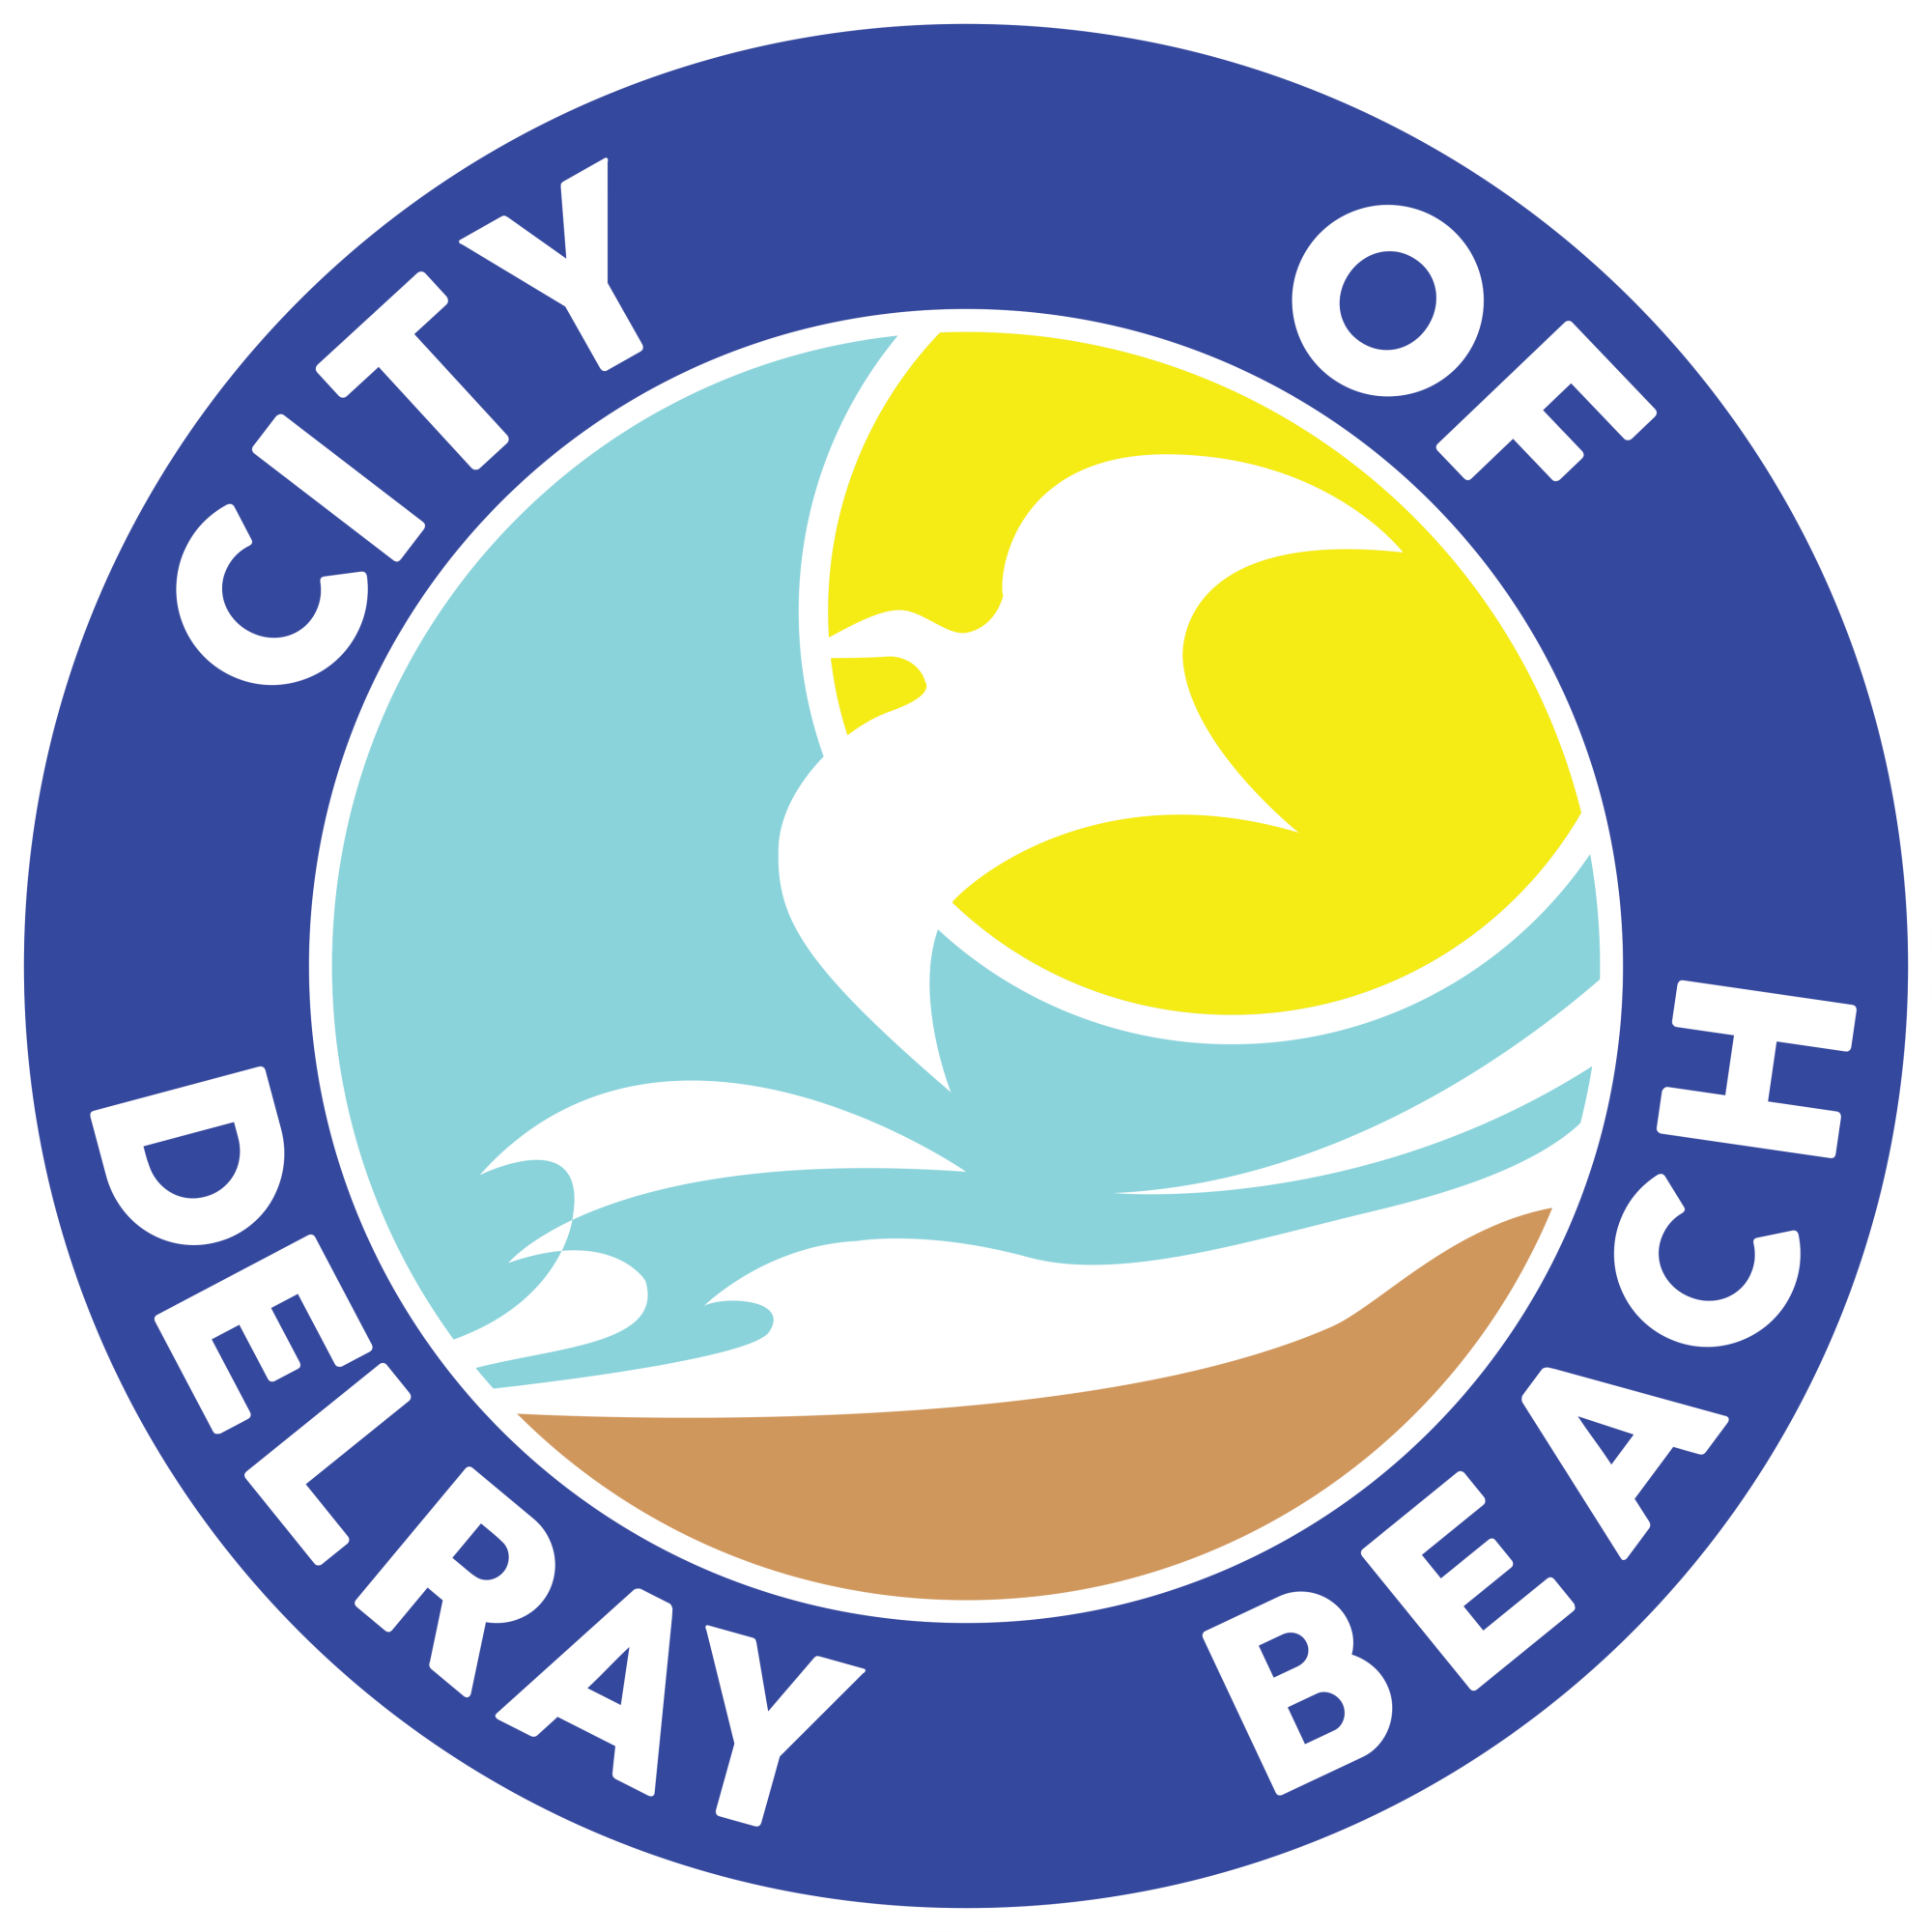 City of Delray Beach Logo 2018 white outline